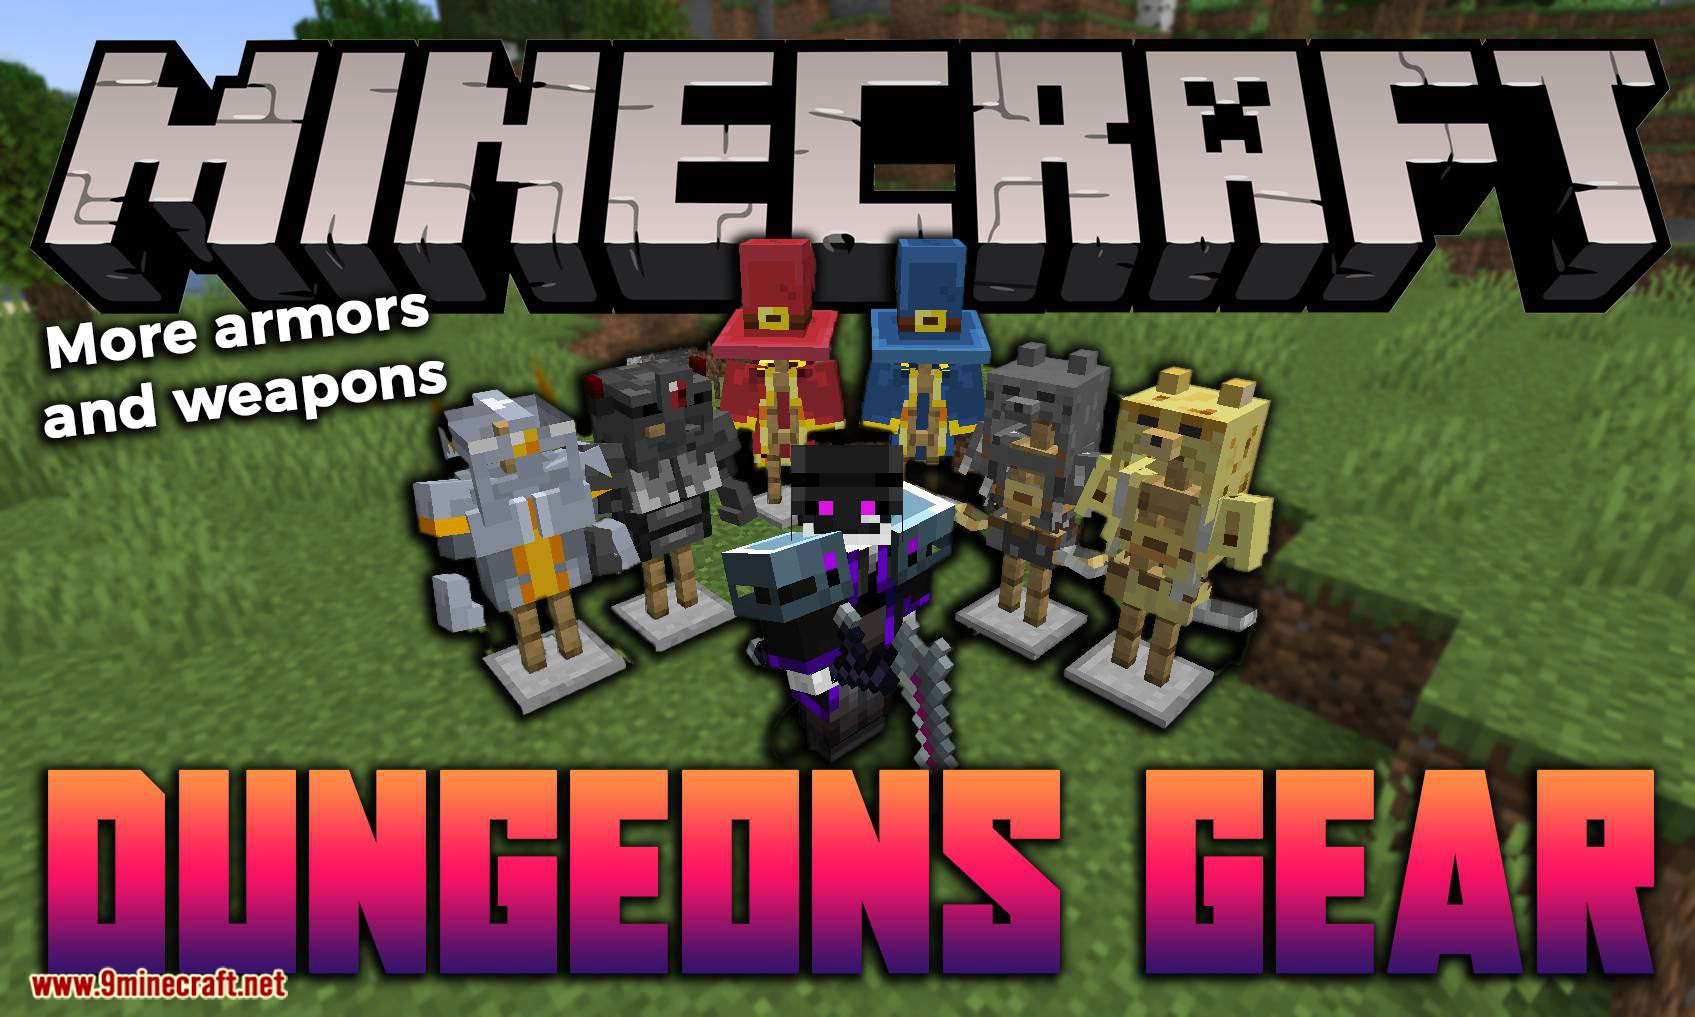 Dungeons Gear Mod 11212.112126.11212/11212.112125.12 (Well-Armed Dungeoneer